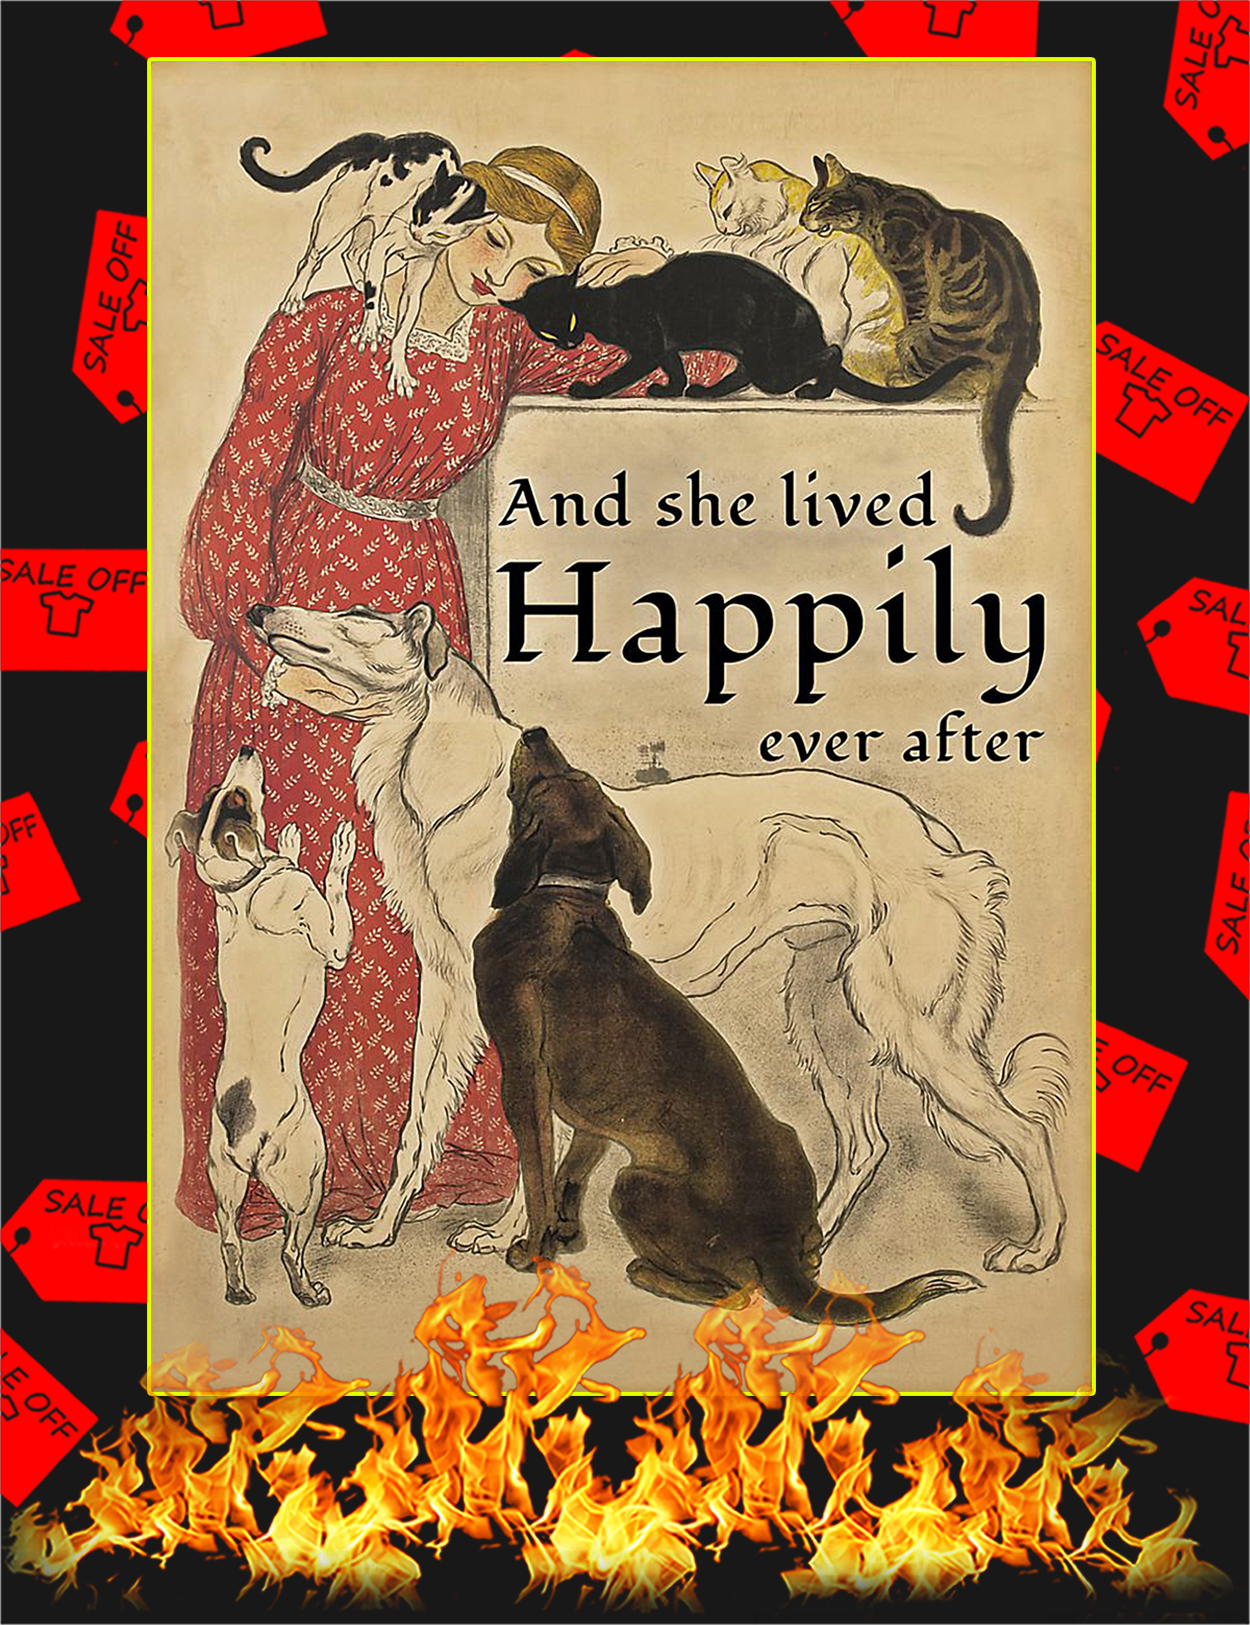 Dog and cat And she lived happily ever after poster - A2